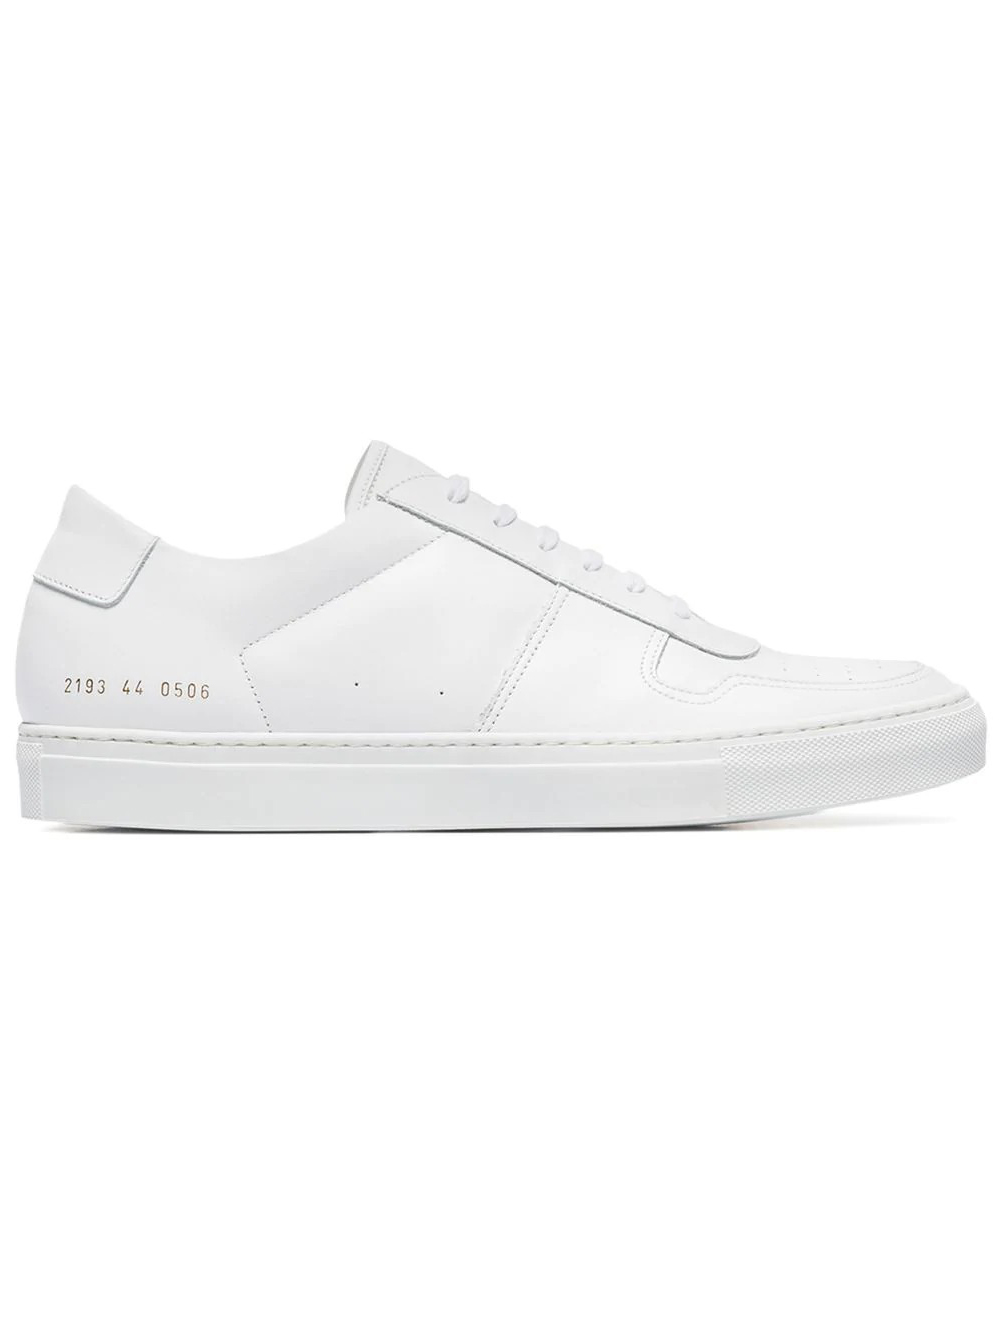 Bball Low White Sole